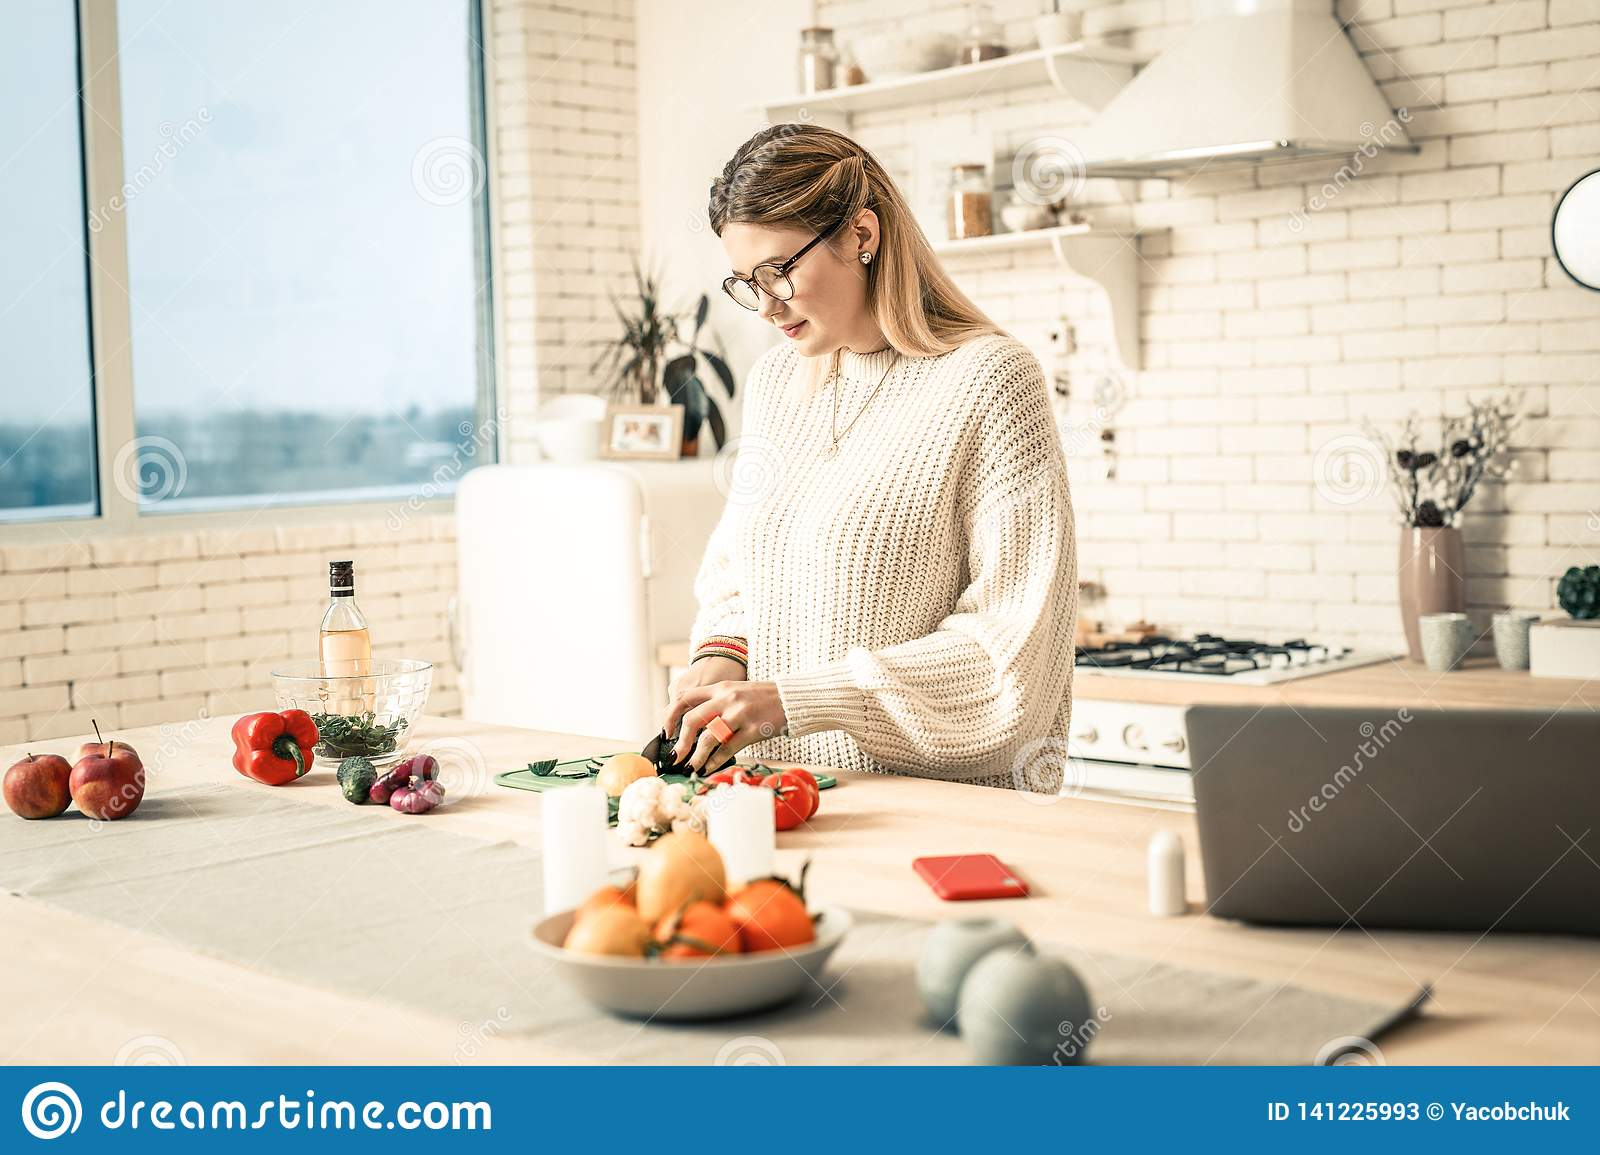 Attentive hard-working lady slicing vegetables during preparation process